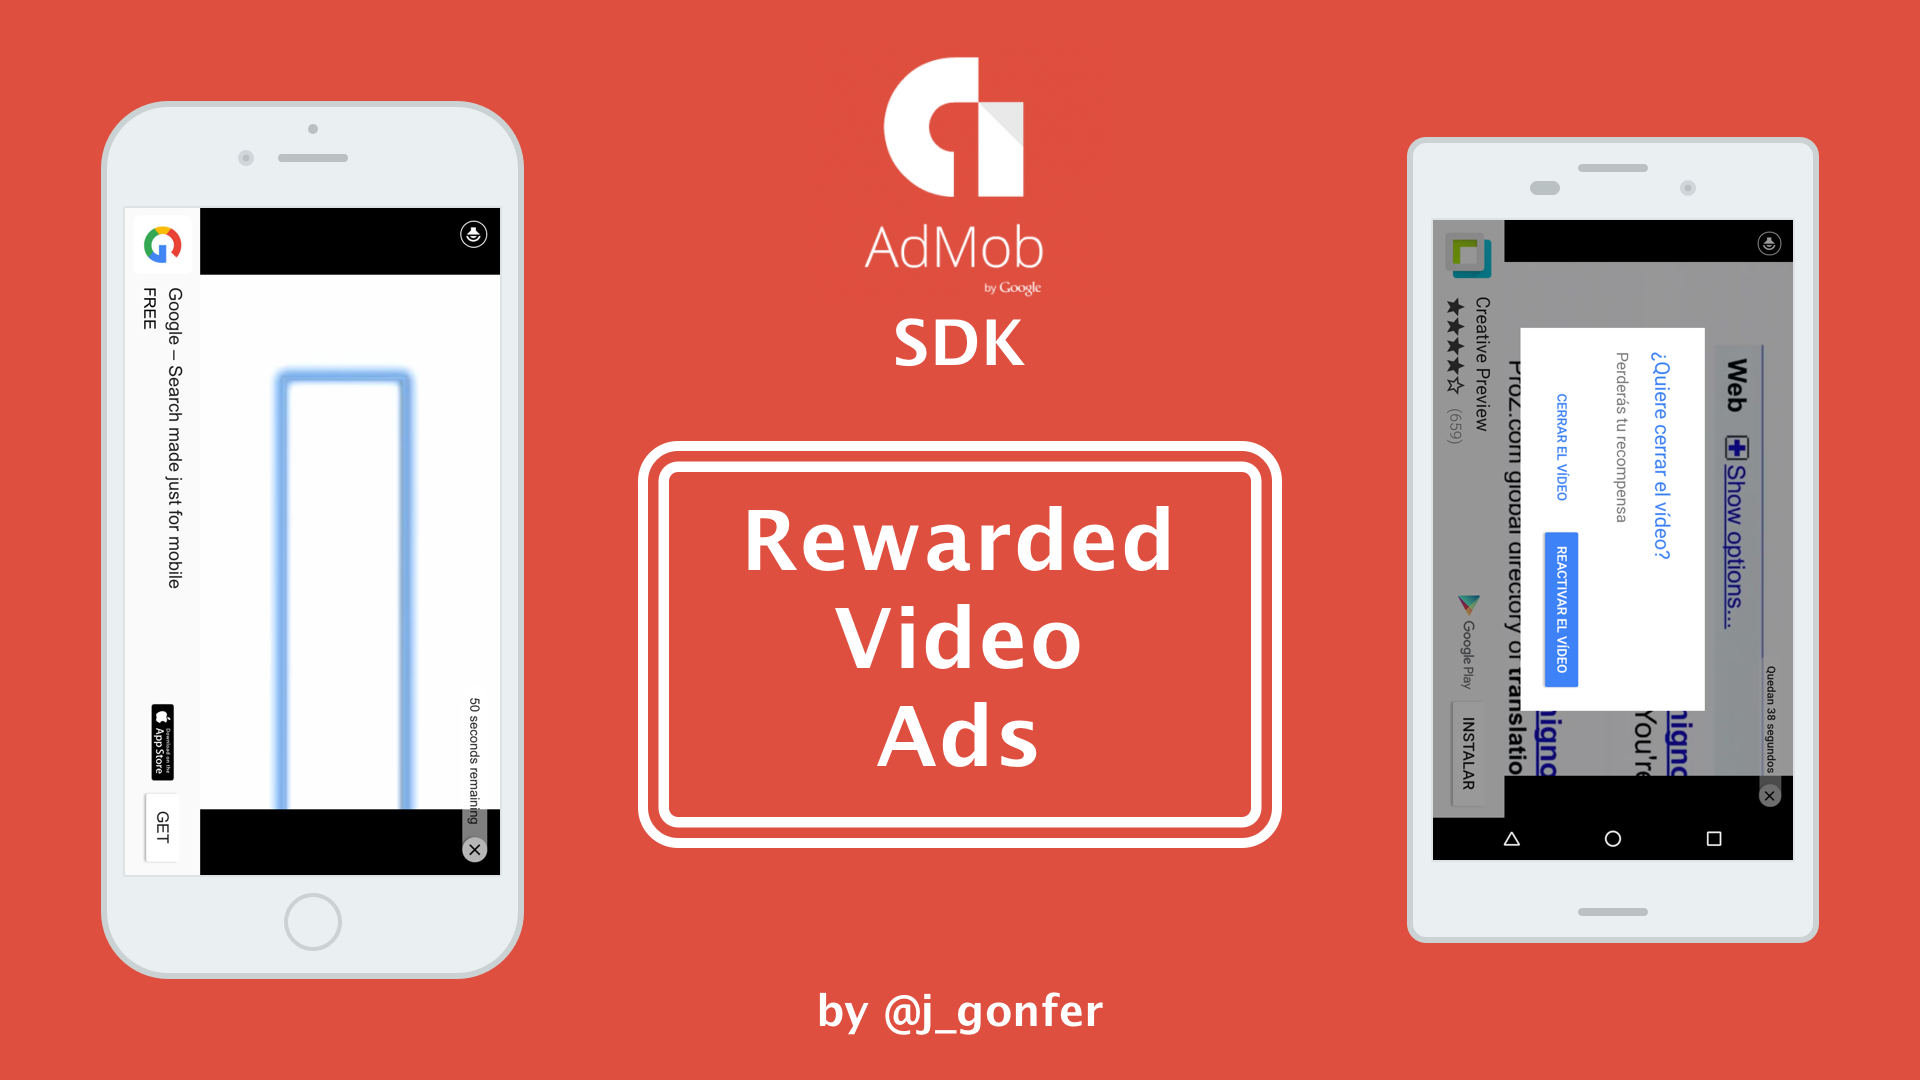 Firebase AdMob Rewarded Video Ads